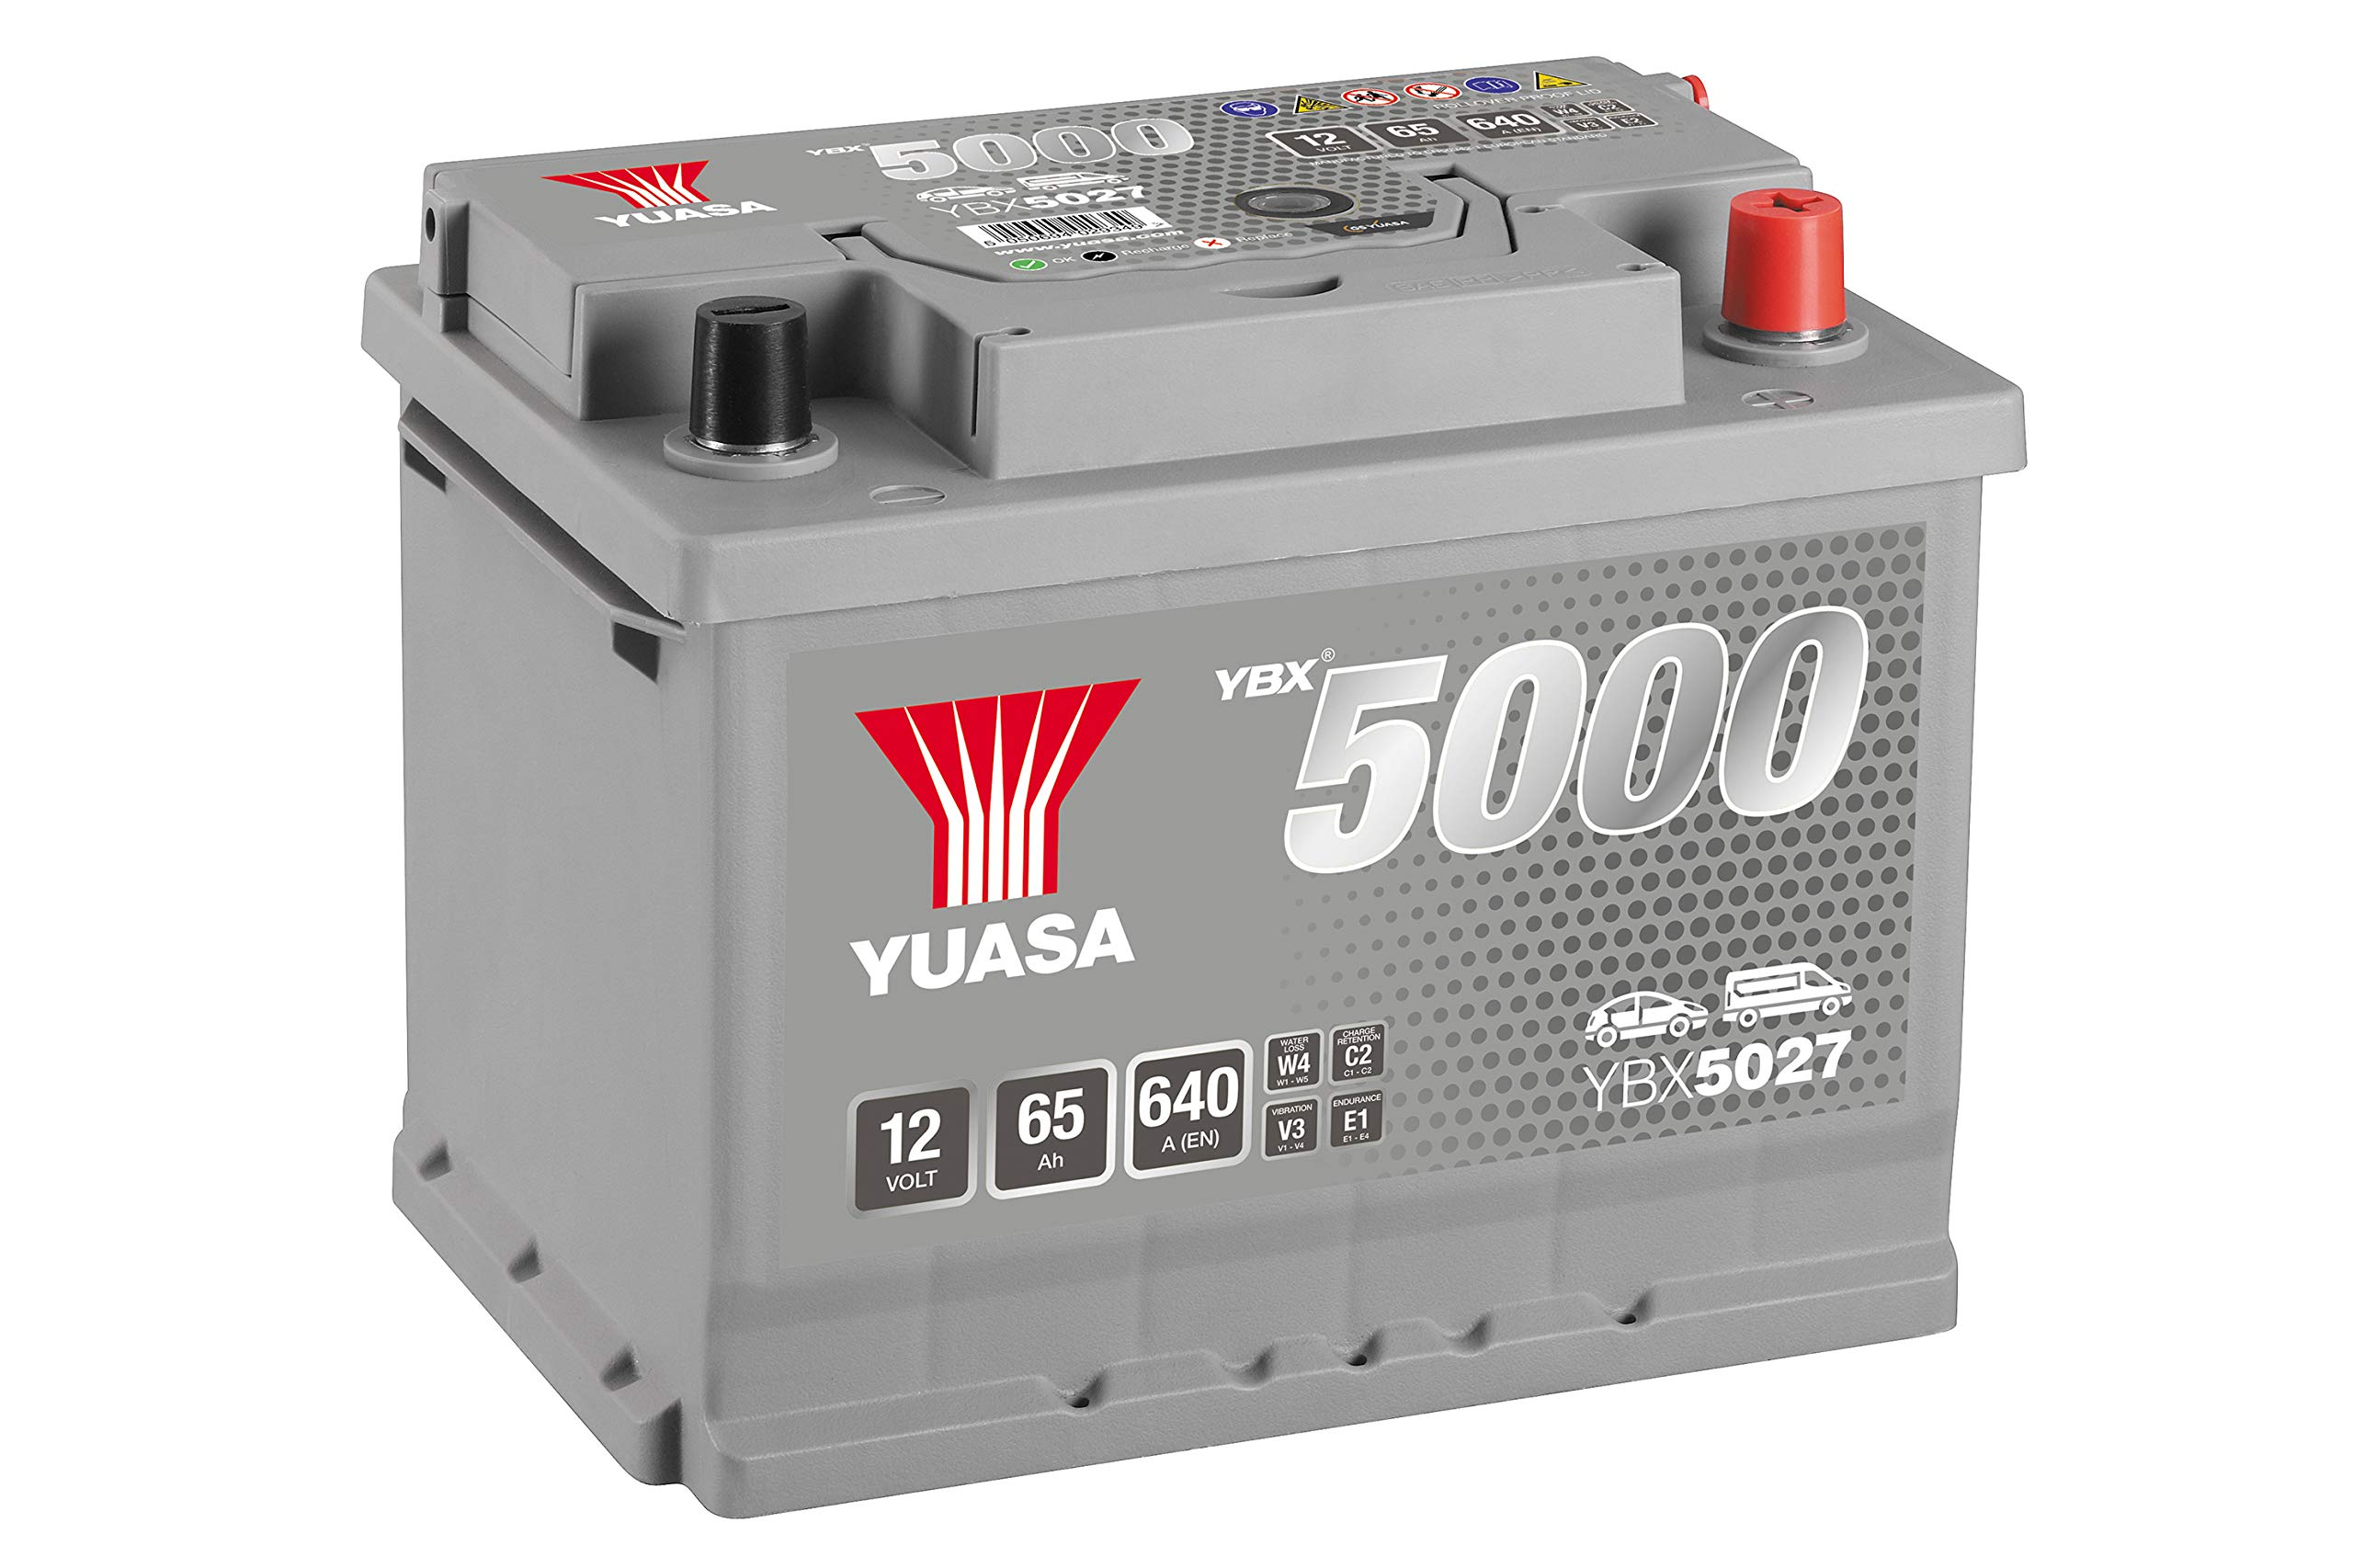 Yuasa YBX5027 12V 65Ah 640A Silver High Performance Battery